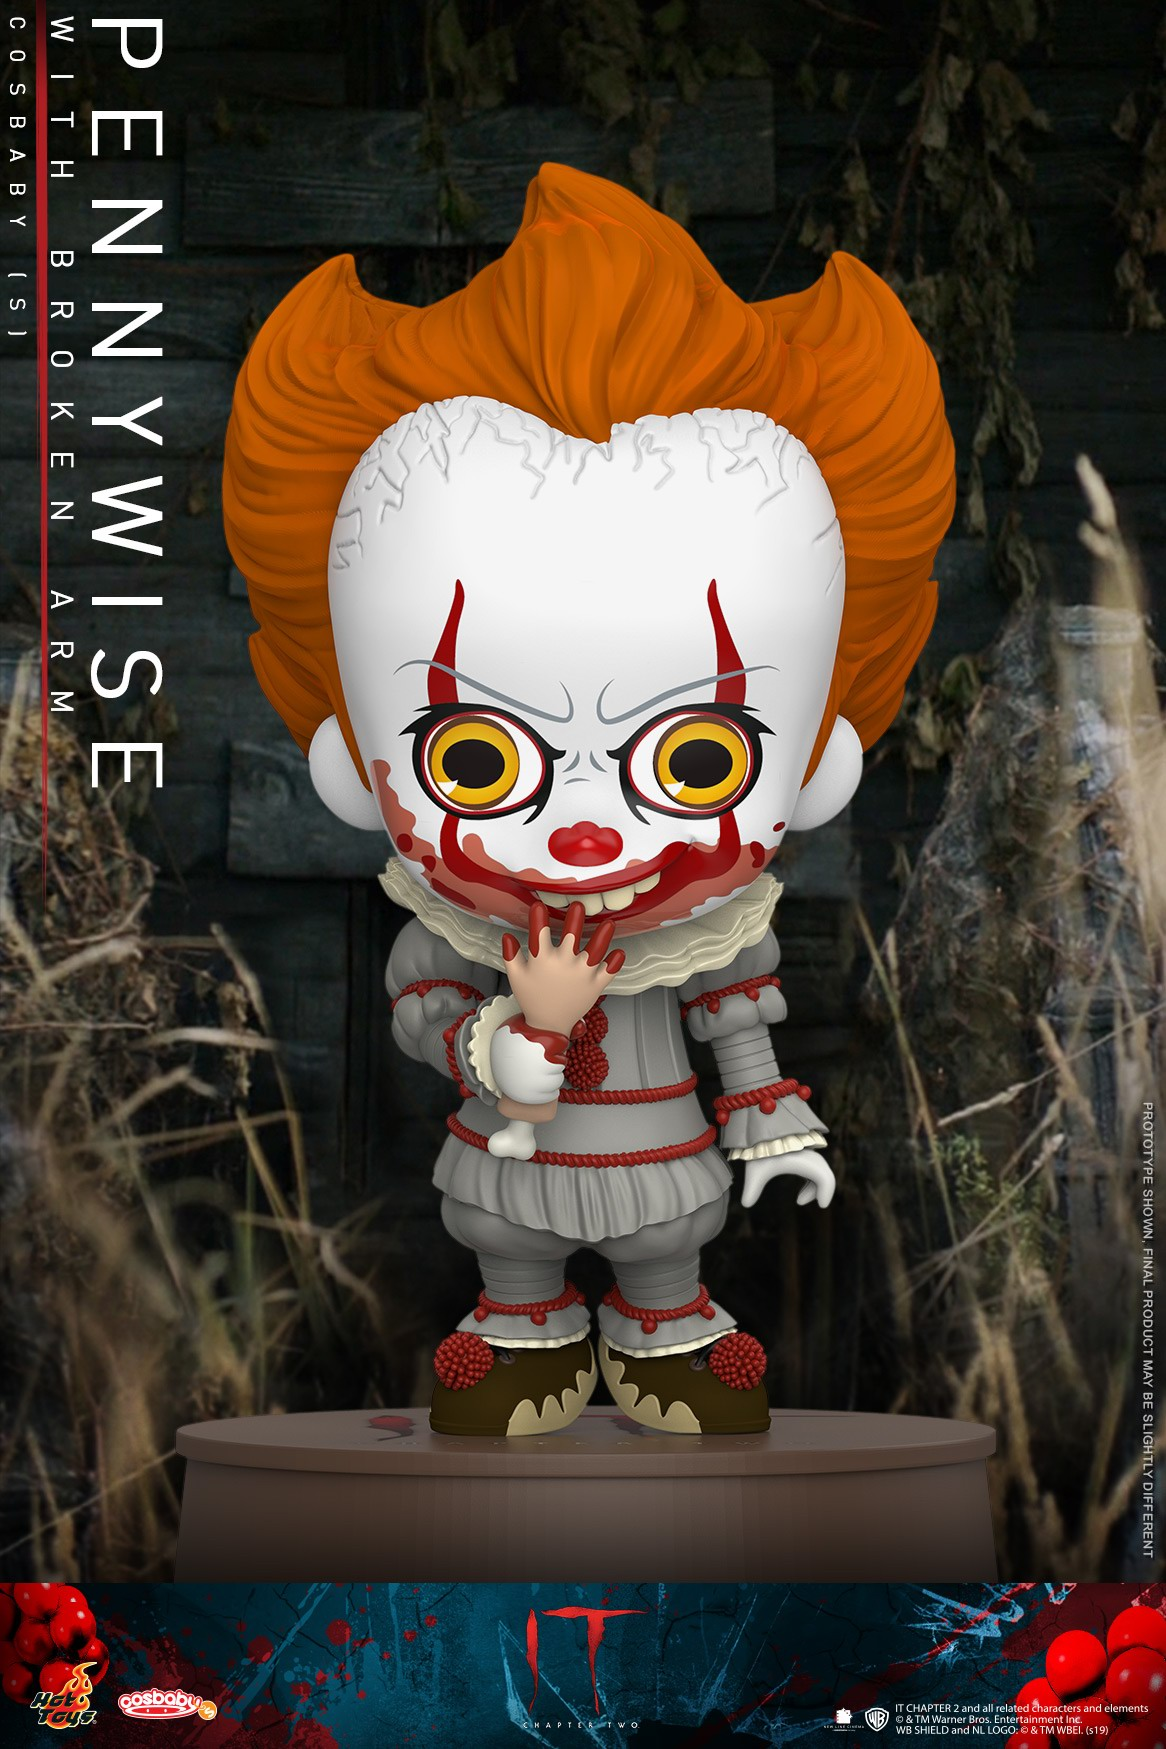 Hot Toys - IT2 - Pennywise With Broken Arm Cosbaby_PR1.jpg